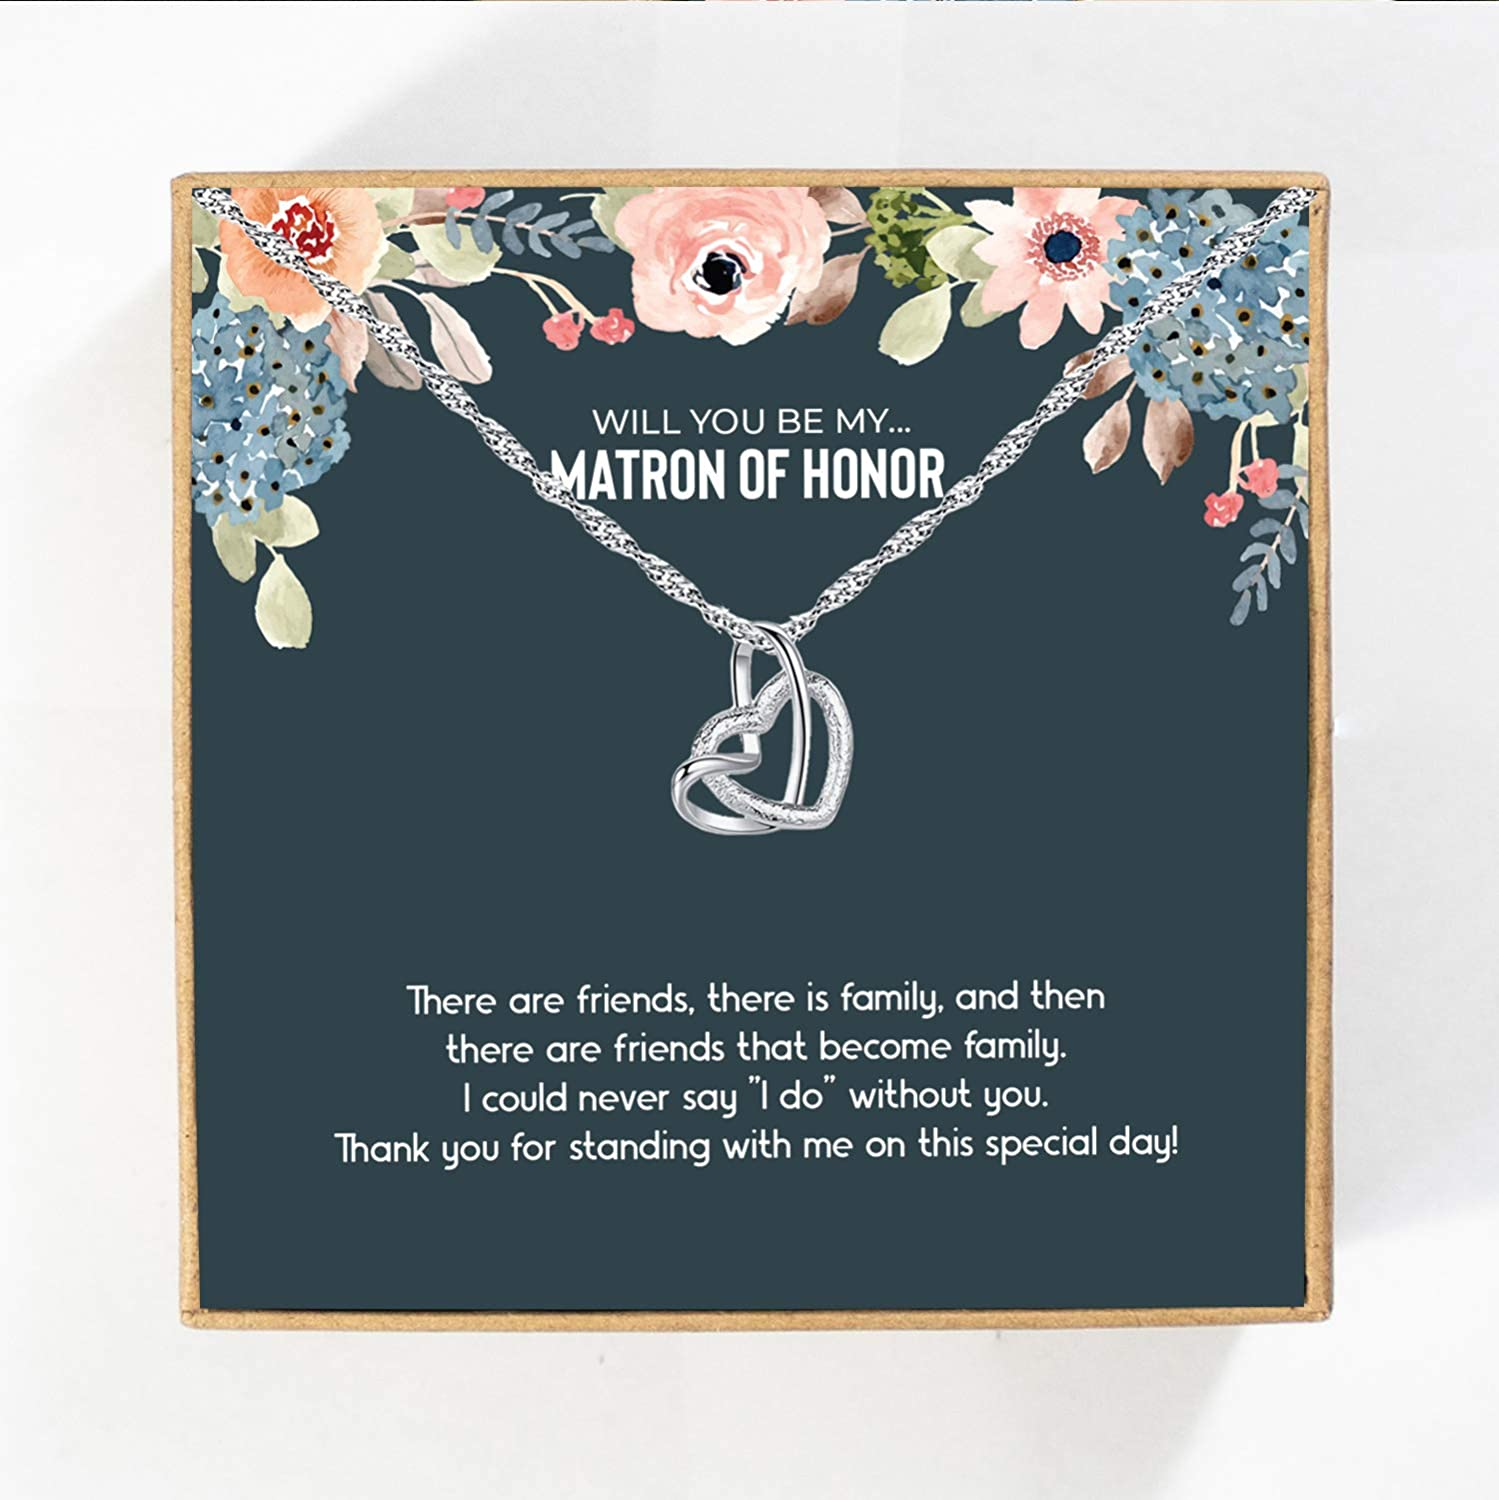 Matron of Honor Gift, MoH Necklace, Matron of Honor Proposal, Gift Box for Matron of Honor, Matron of Honor Necklace, Matron of Honor Card